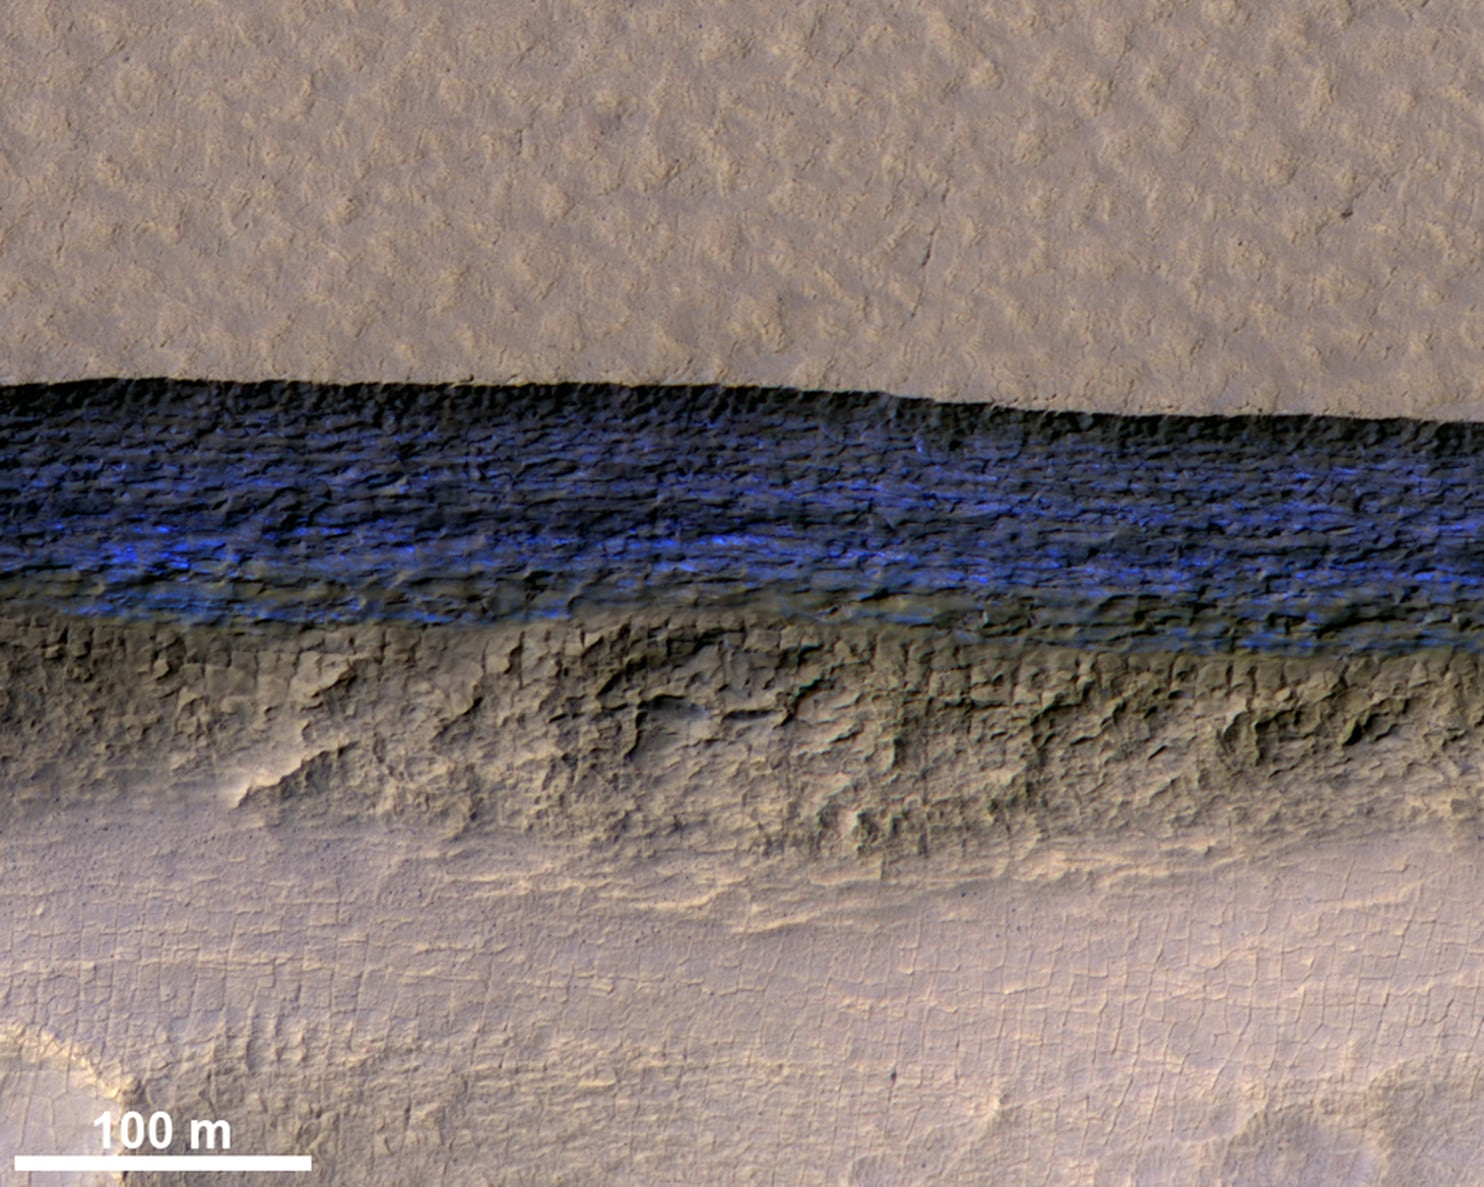 Massive Subsurface Ice Sheets Could Support Life on Mars